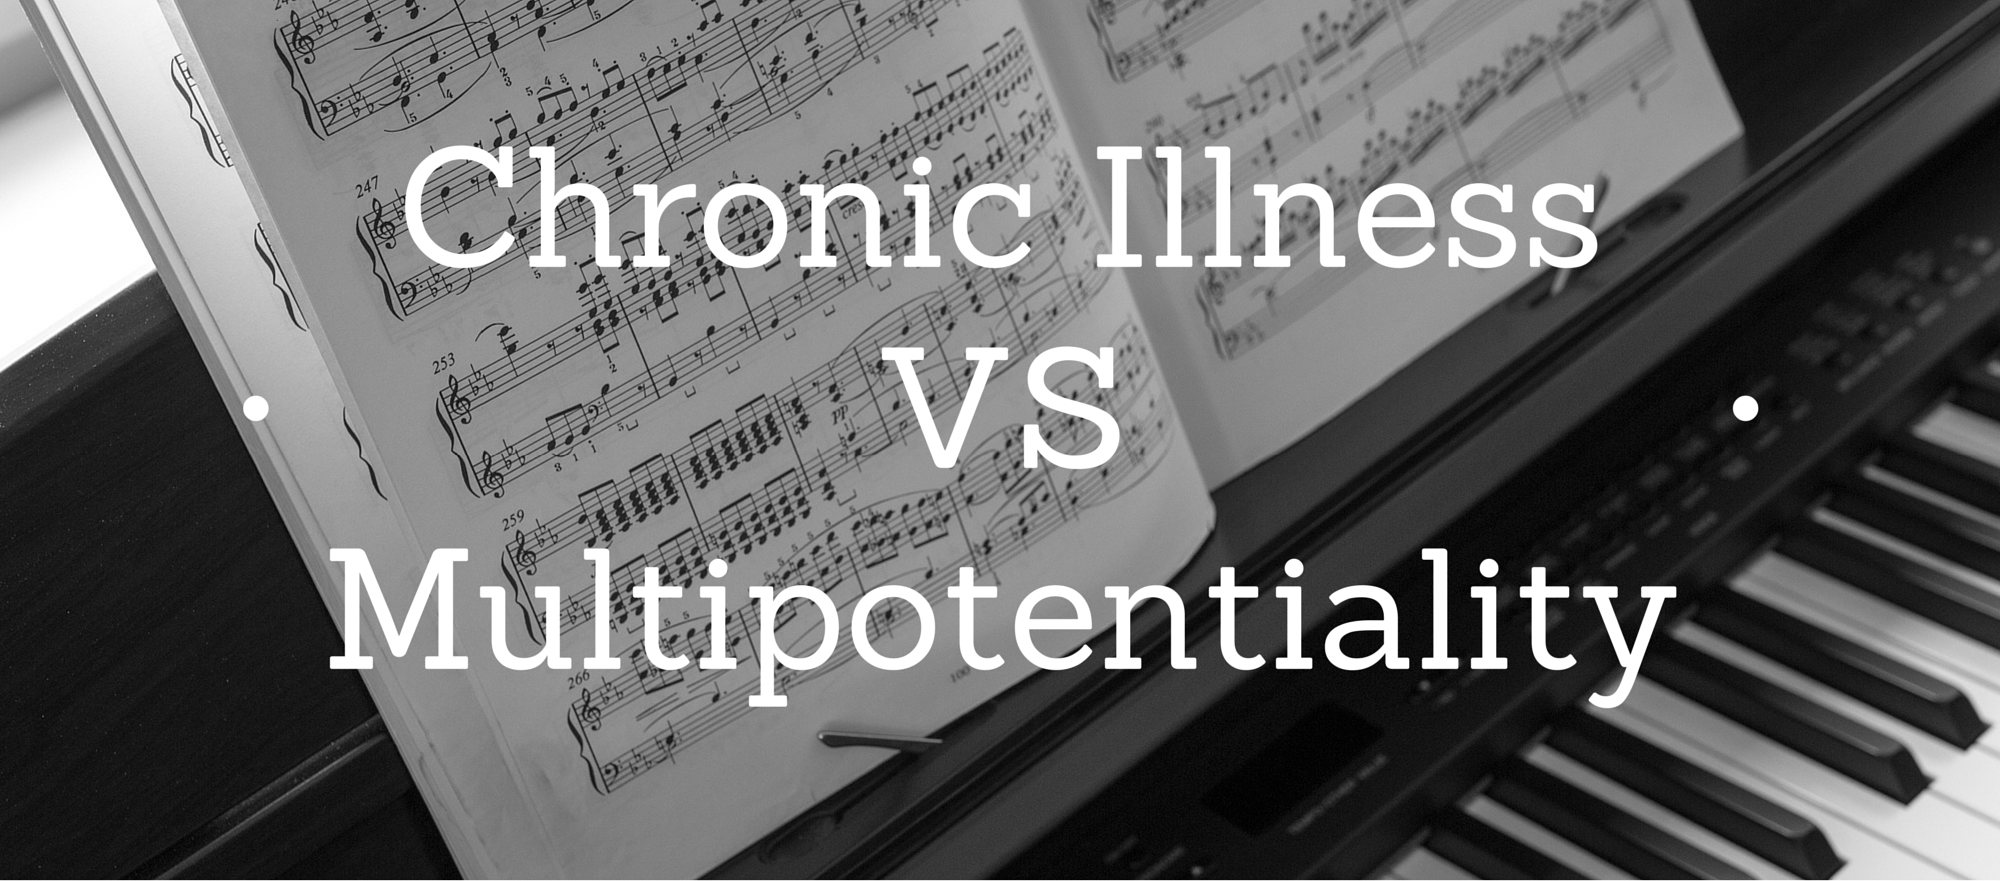 Chronic Illness VS Multipotentiality